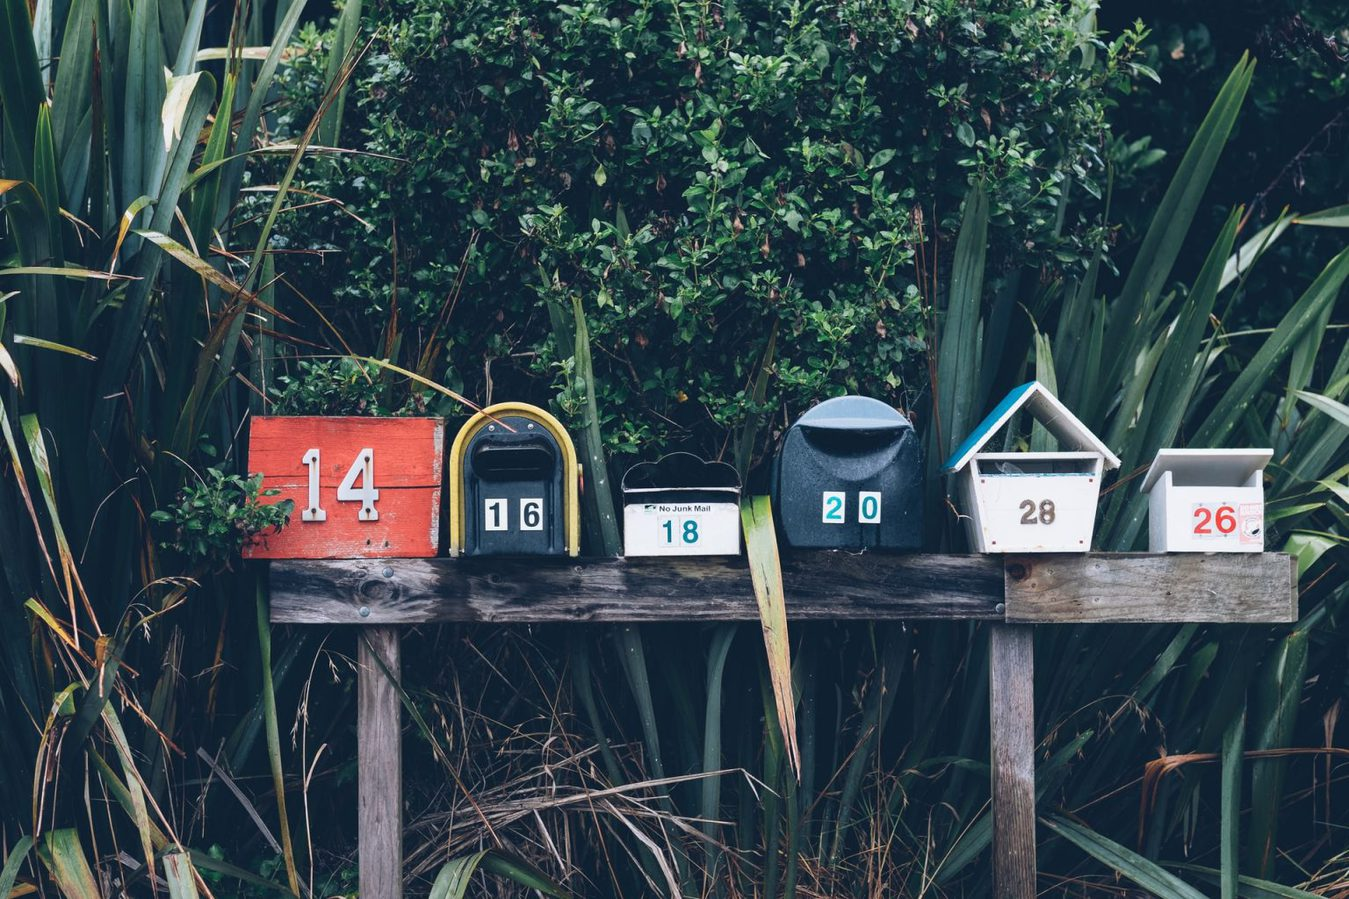 Mail boxes outside in front of a green bush